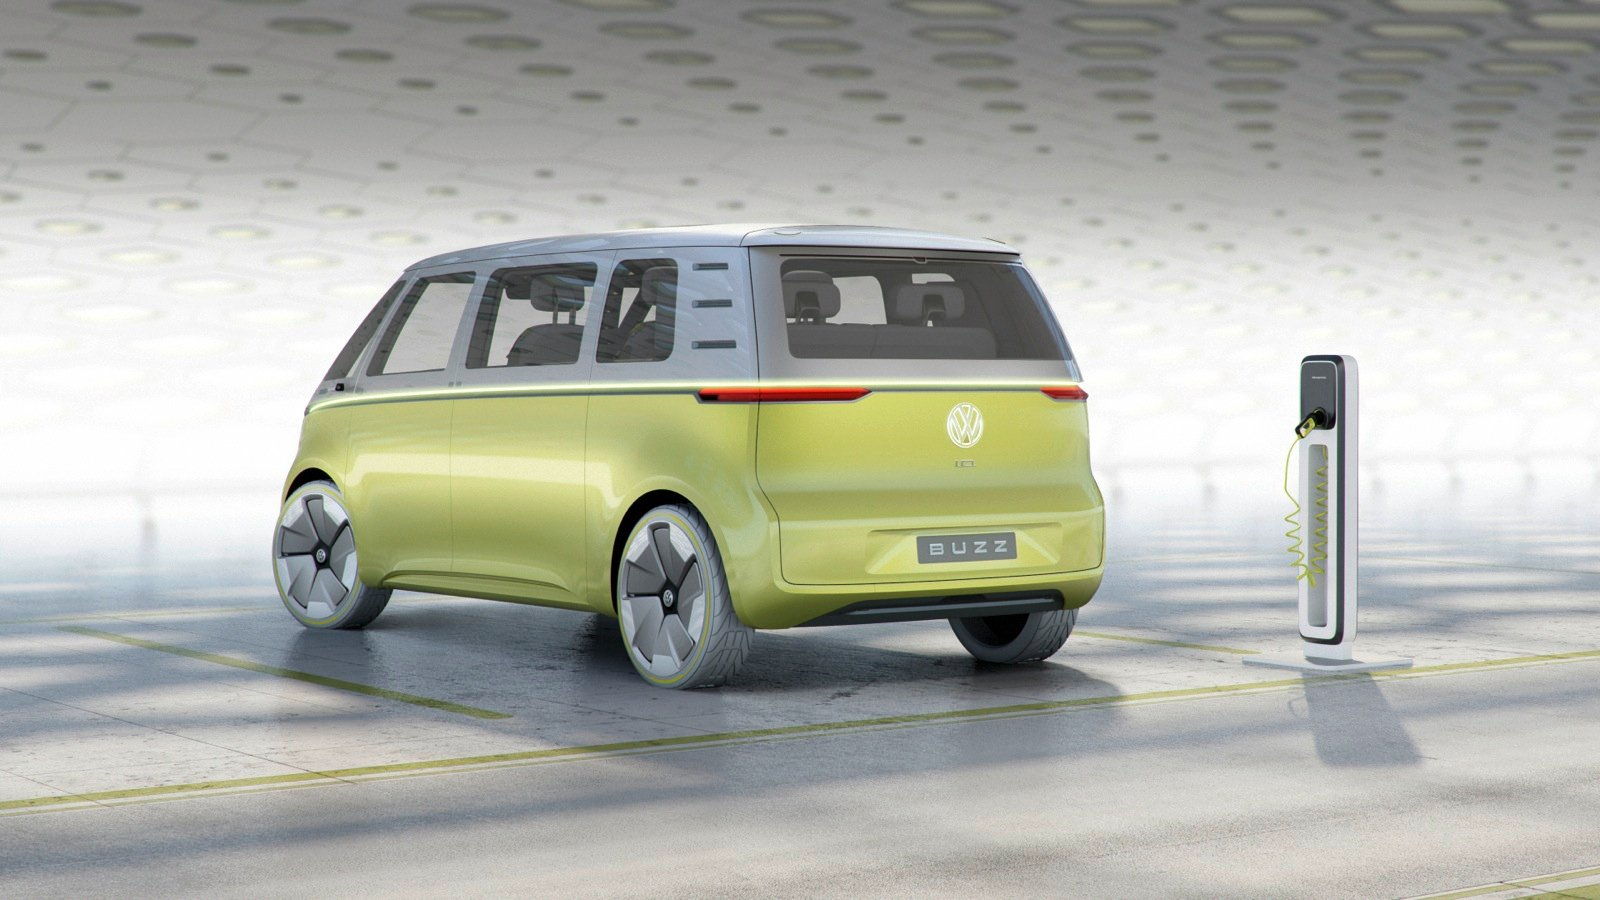 Subaru Older Models >> Volkswagen I.D. Buzz concept revealed - photos | CarAdvice